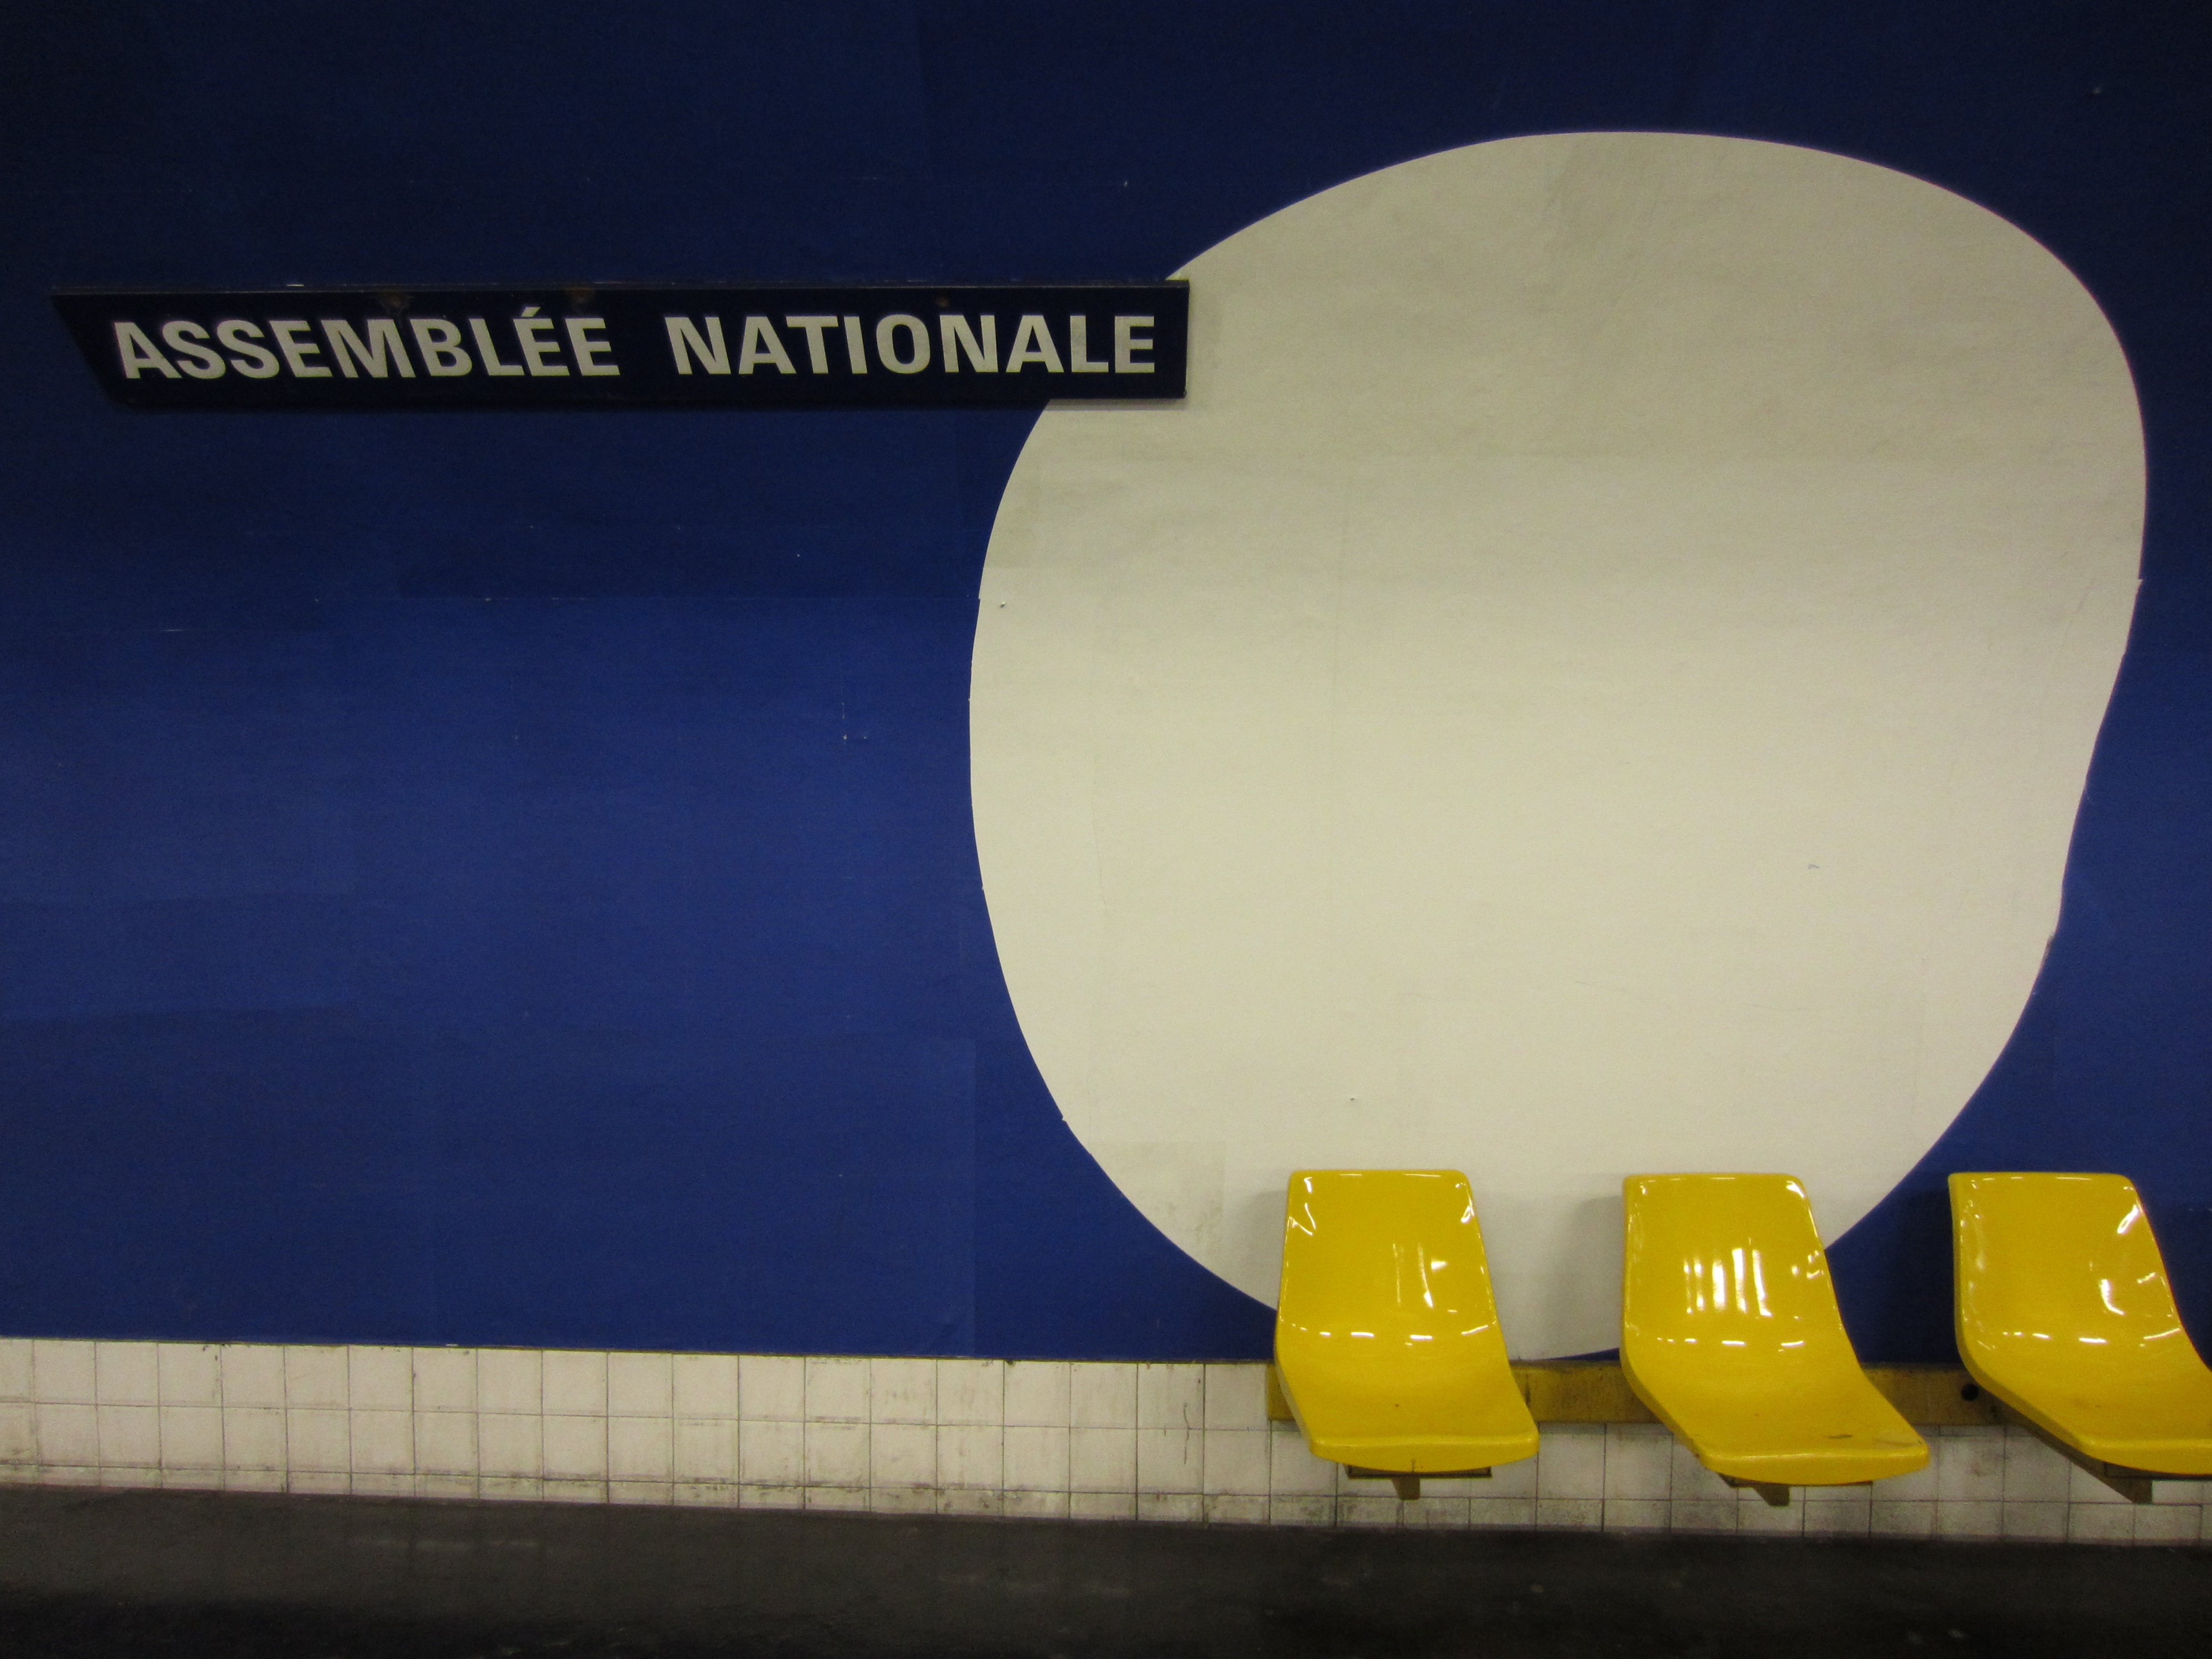 a large white circle painted against a blue background in the paris metro